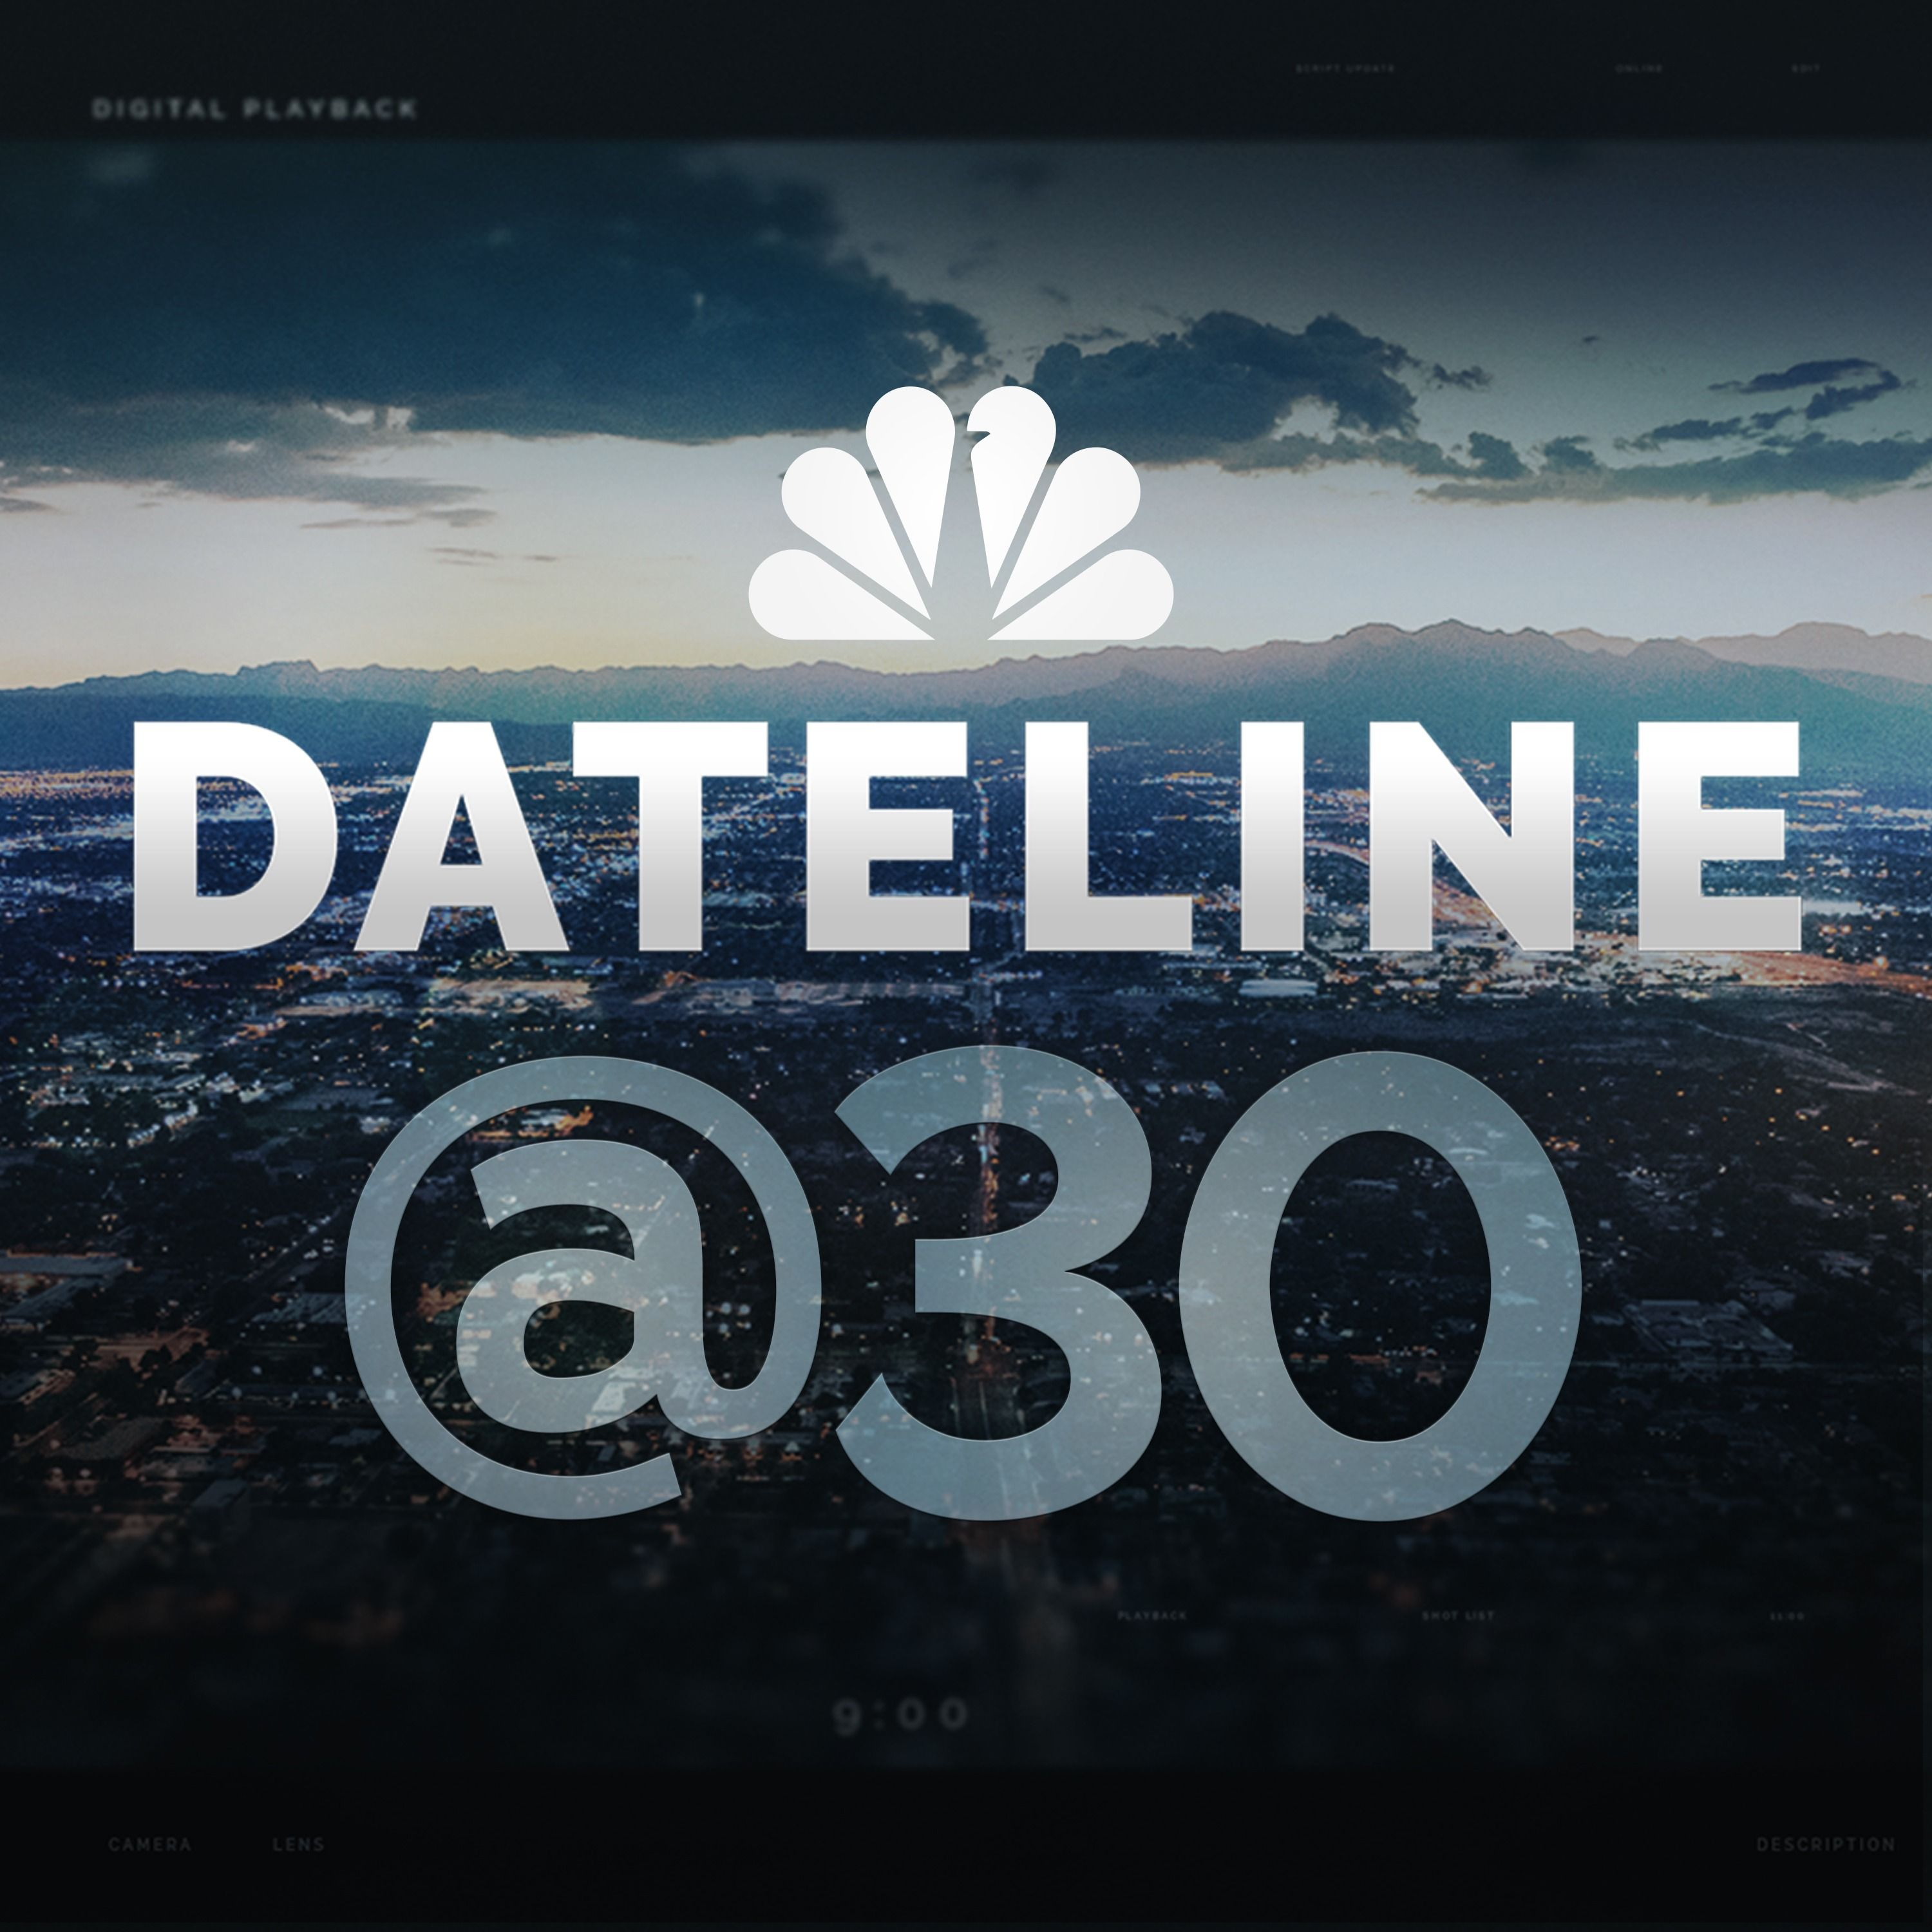 Dateline@30: The Monster at Large